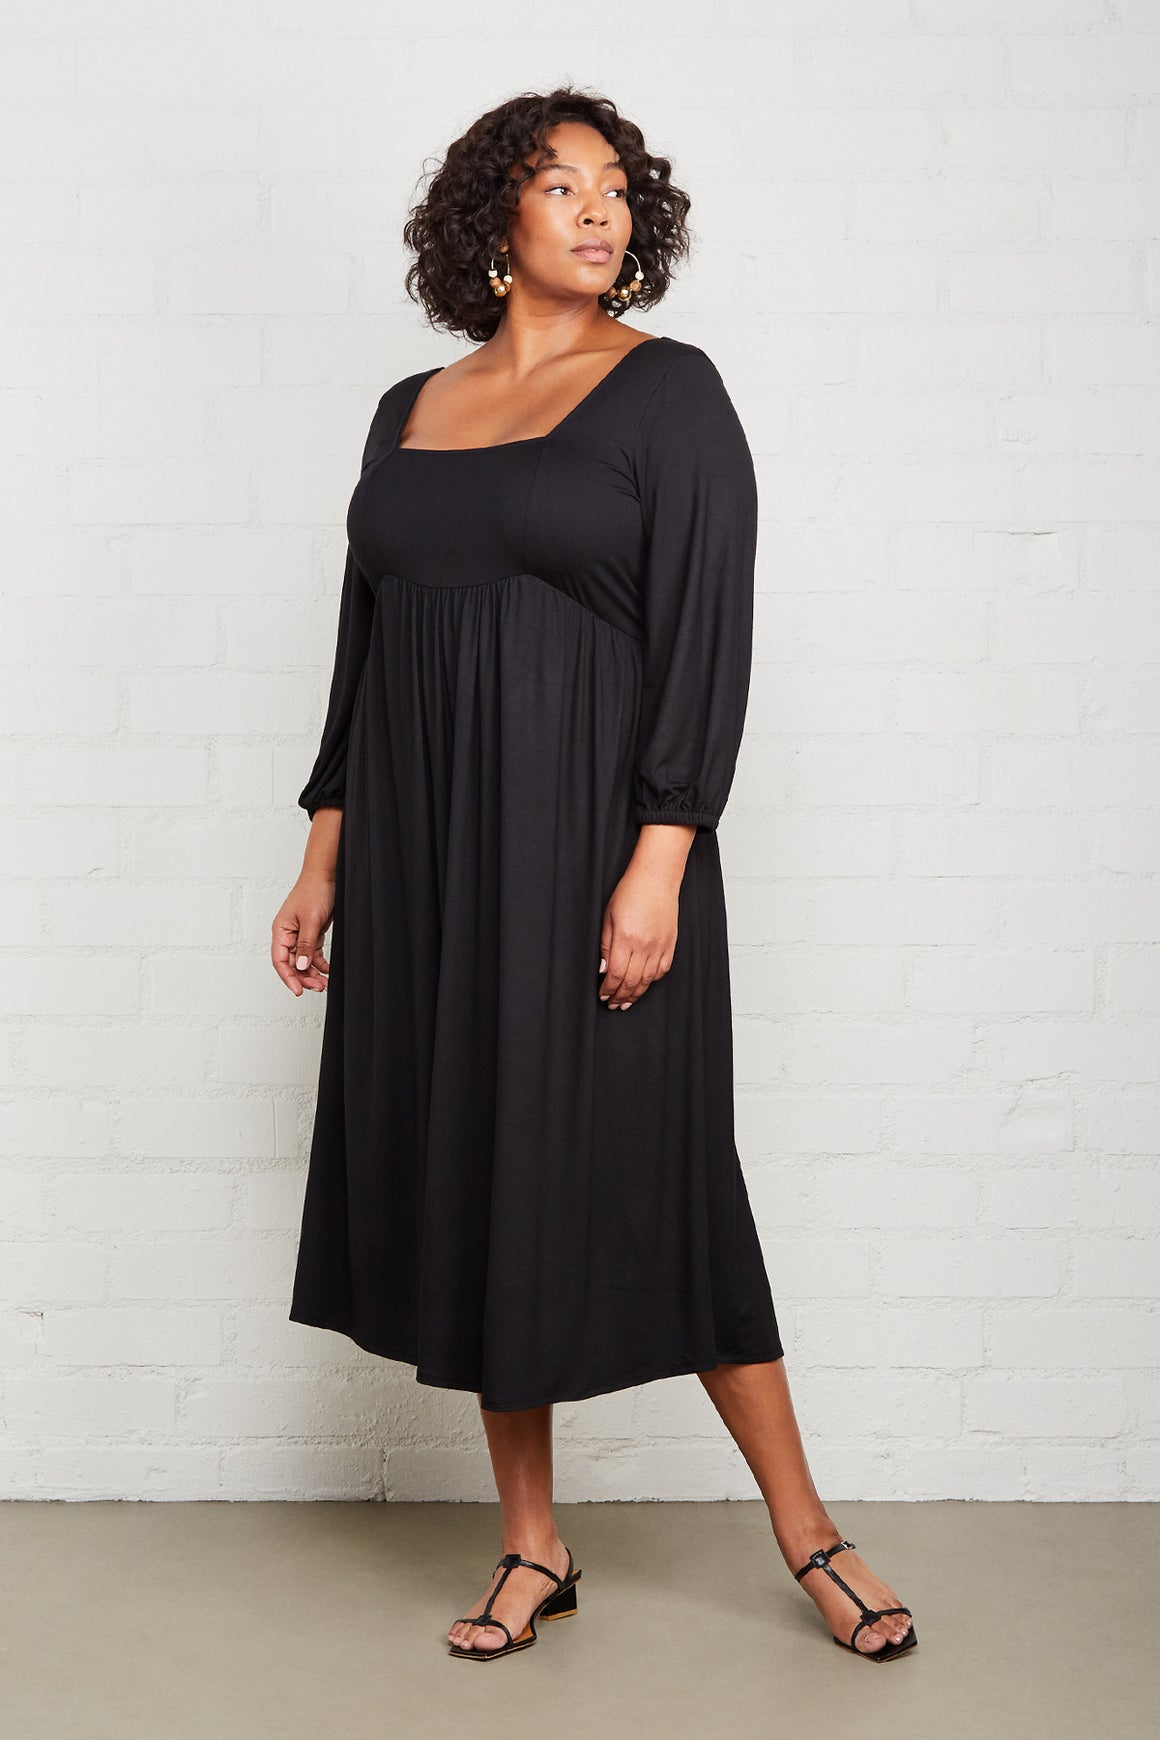 Raphaela Dress - Plus Size